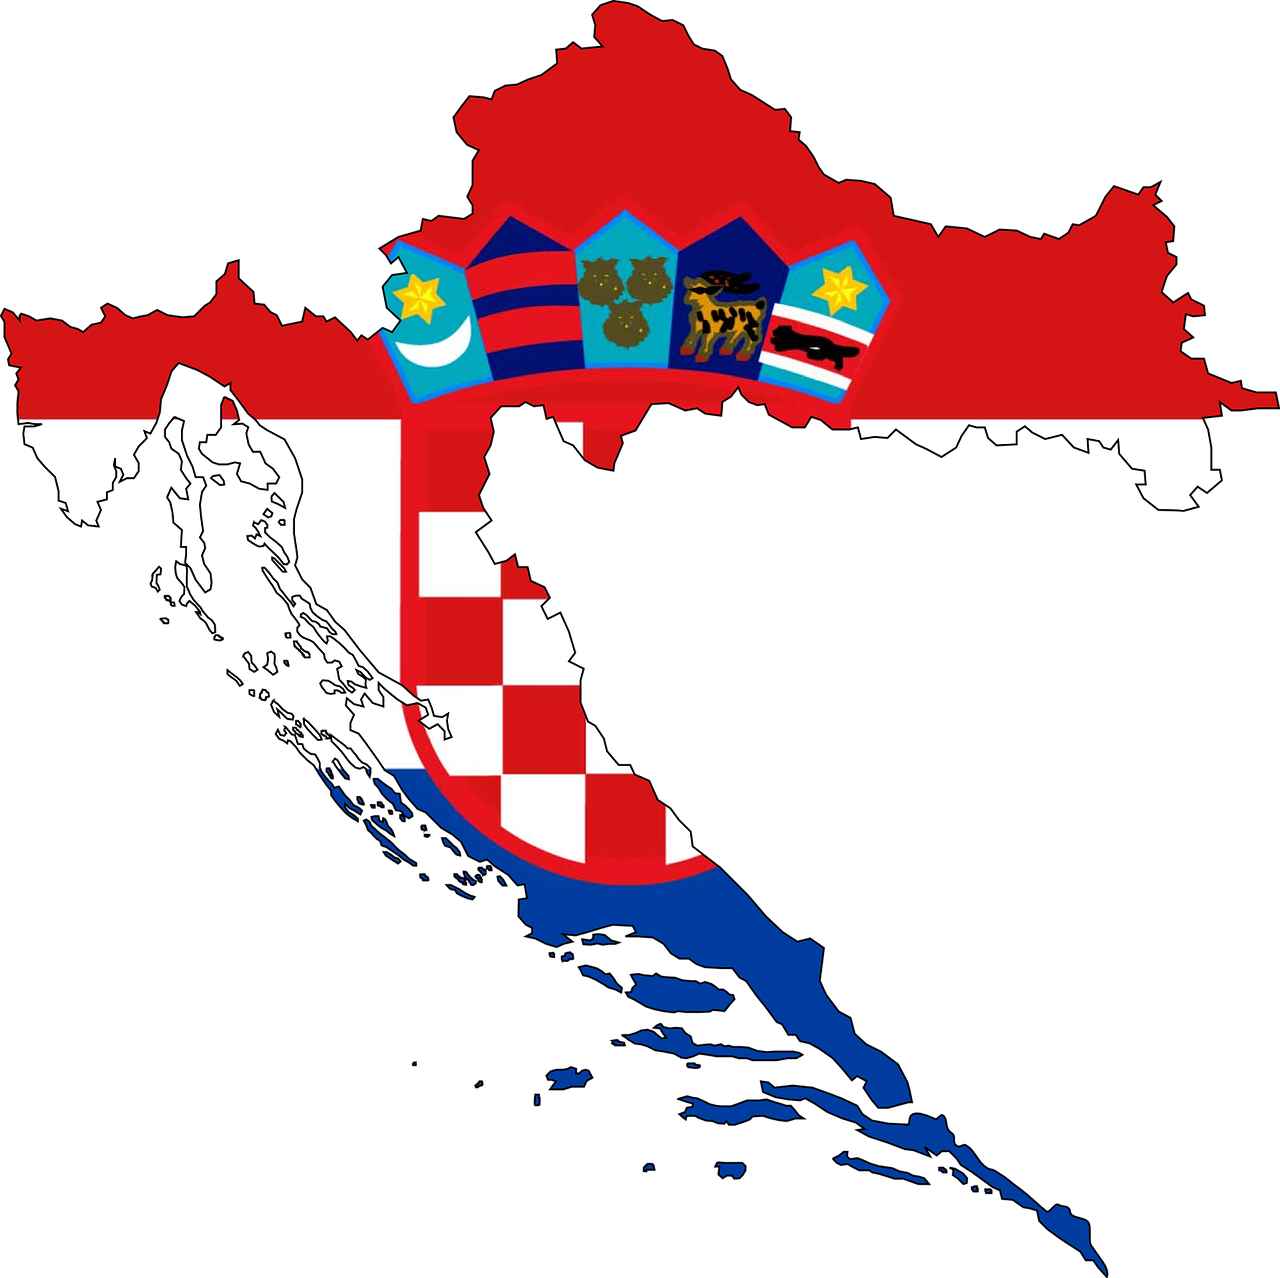 Croatians to vote on euro motif from 5 choices